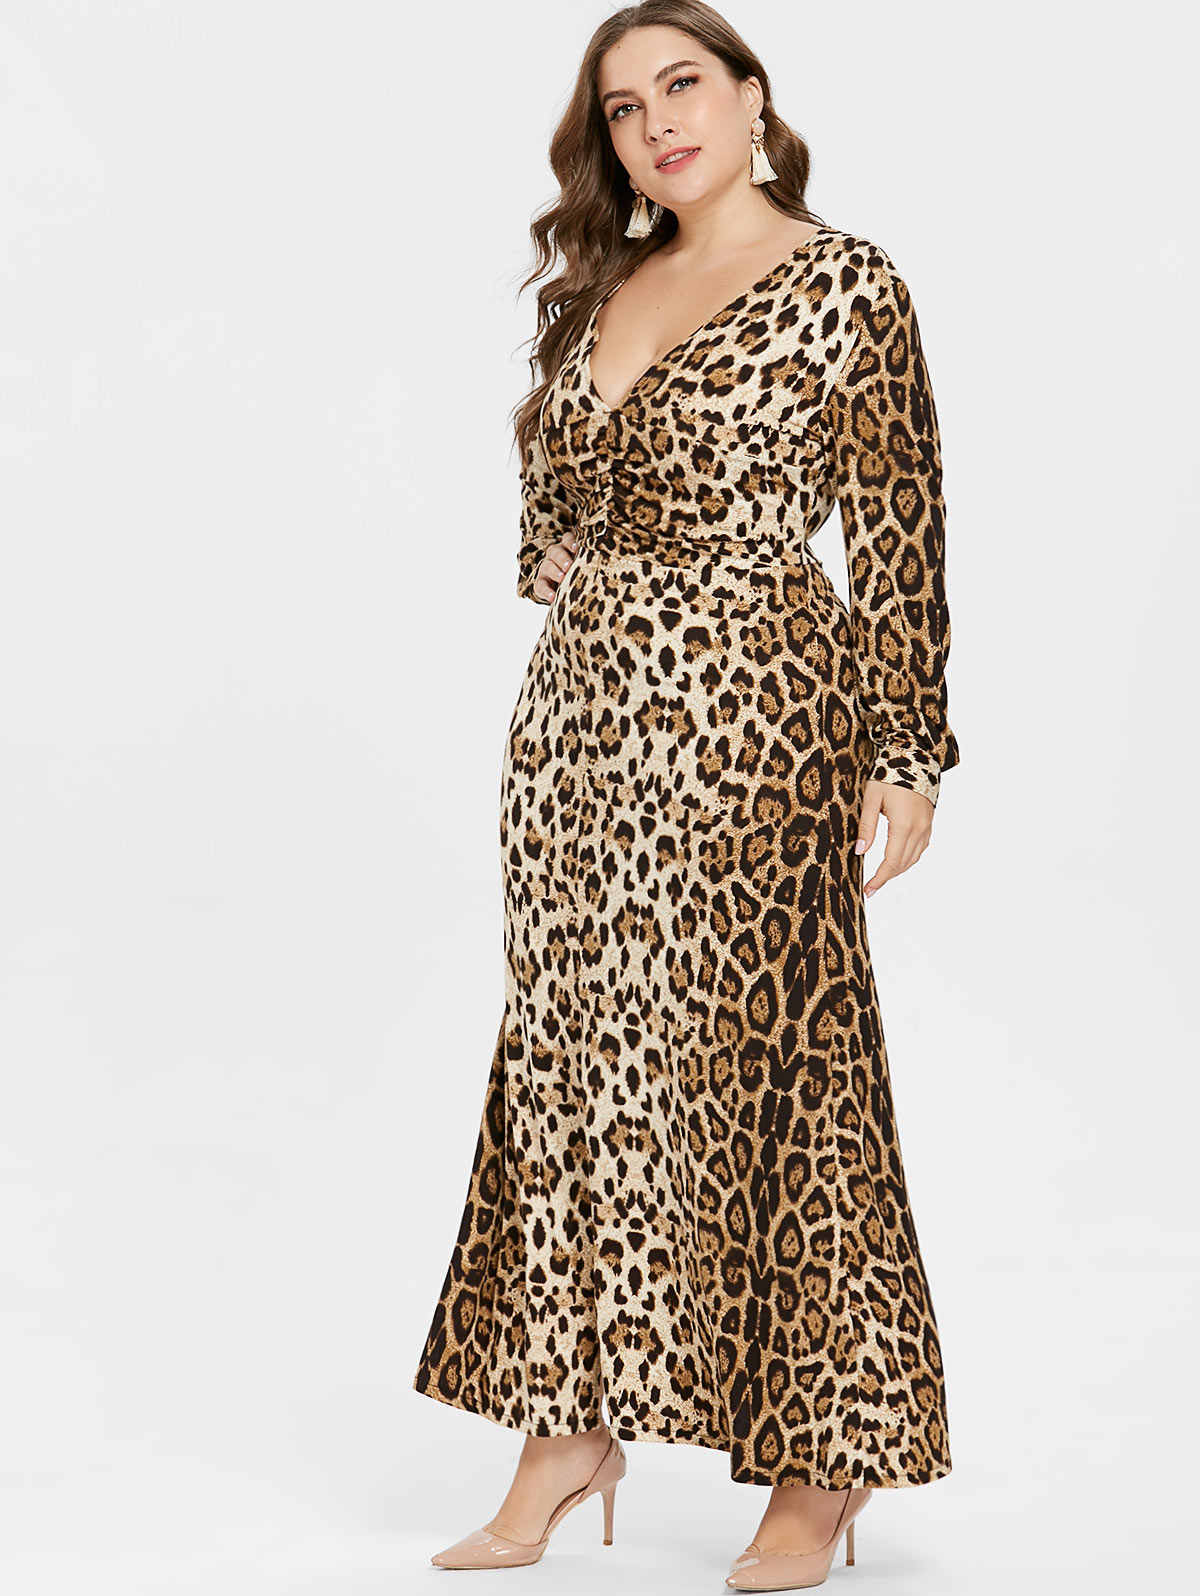 e4a03428383 Kenancy Plus Size Women Dress Leopard Print V-Neck Long Sleeve Front Split  Maxi Dress Autumn Female Dresses Feminino Vestidos